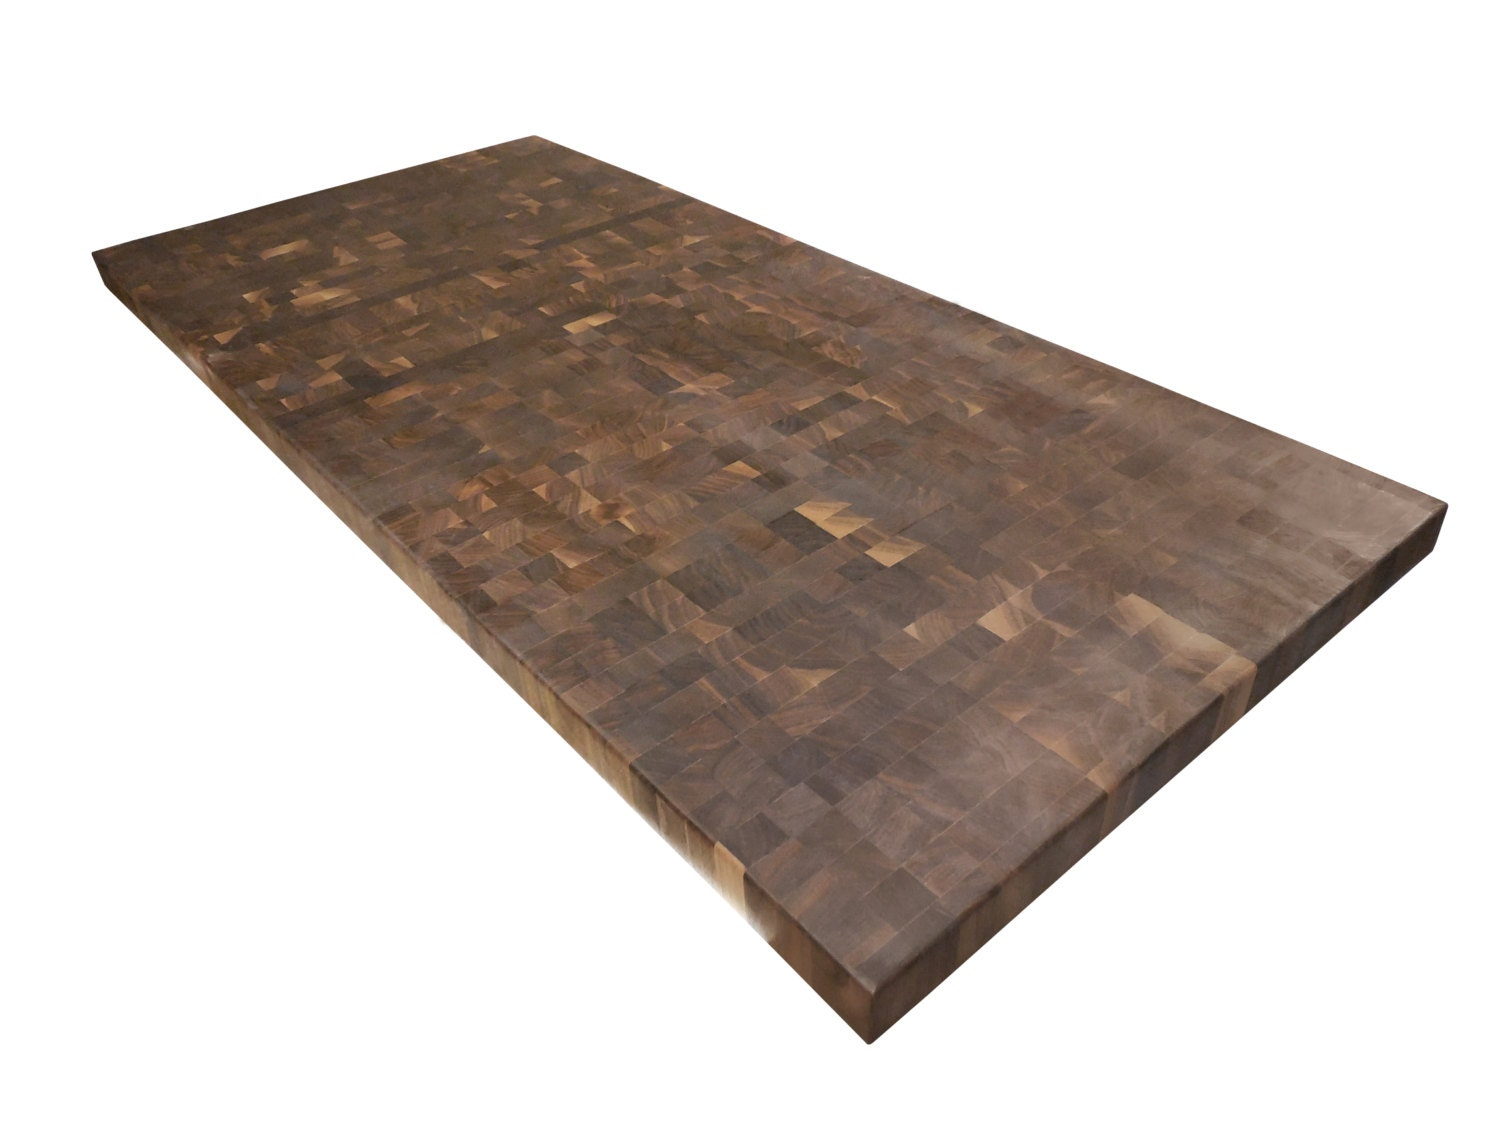 End Grain Walnut Butcher Block Countertop Island Chopping